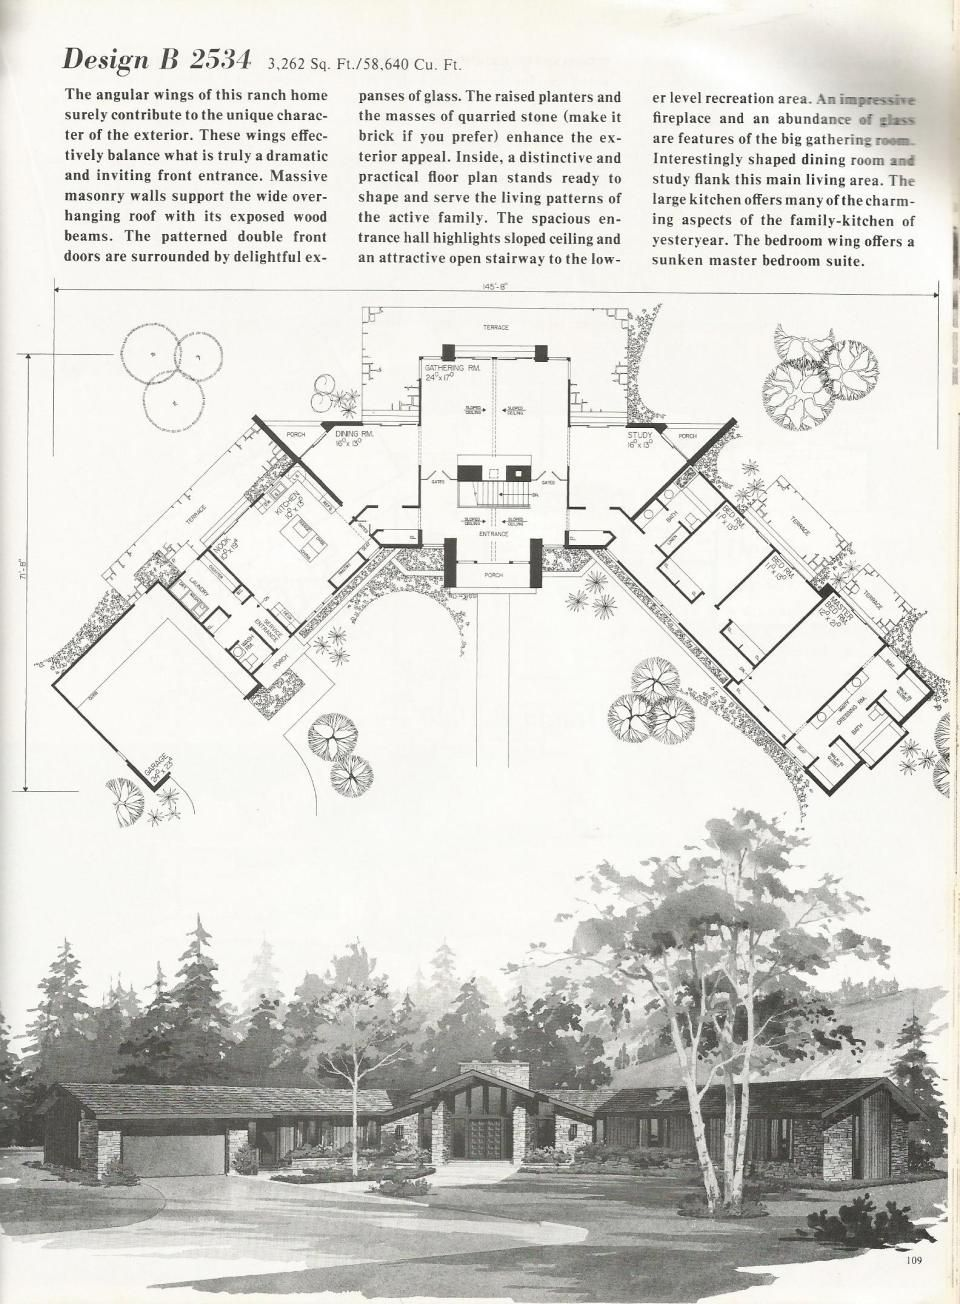 Vintage House Plans Luxury Contemporary Homes Vintage House Plans Modern Floor Plans Mid Century Modern House Plans